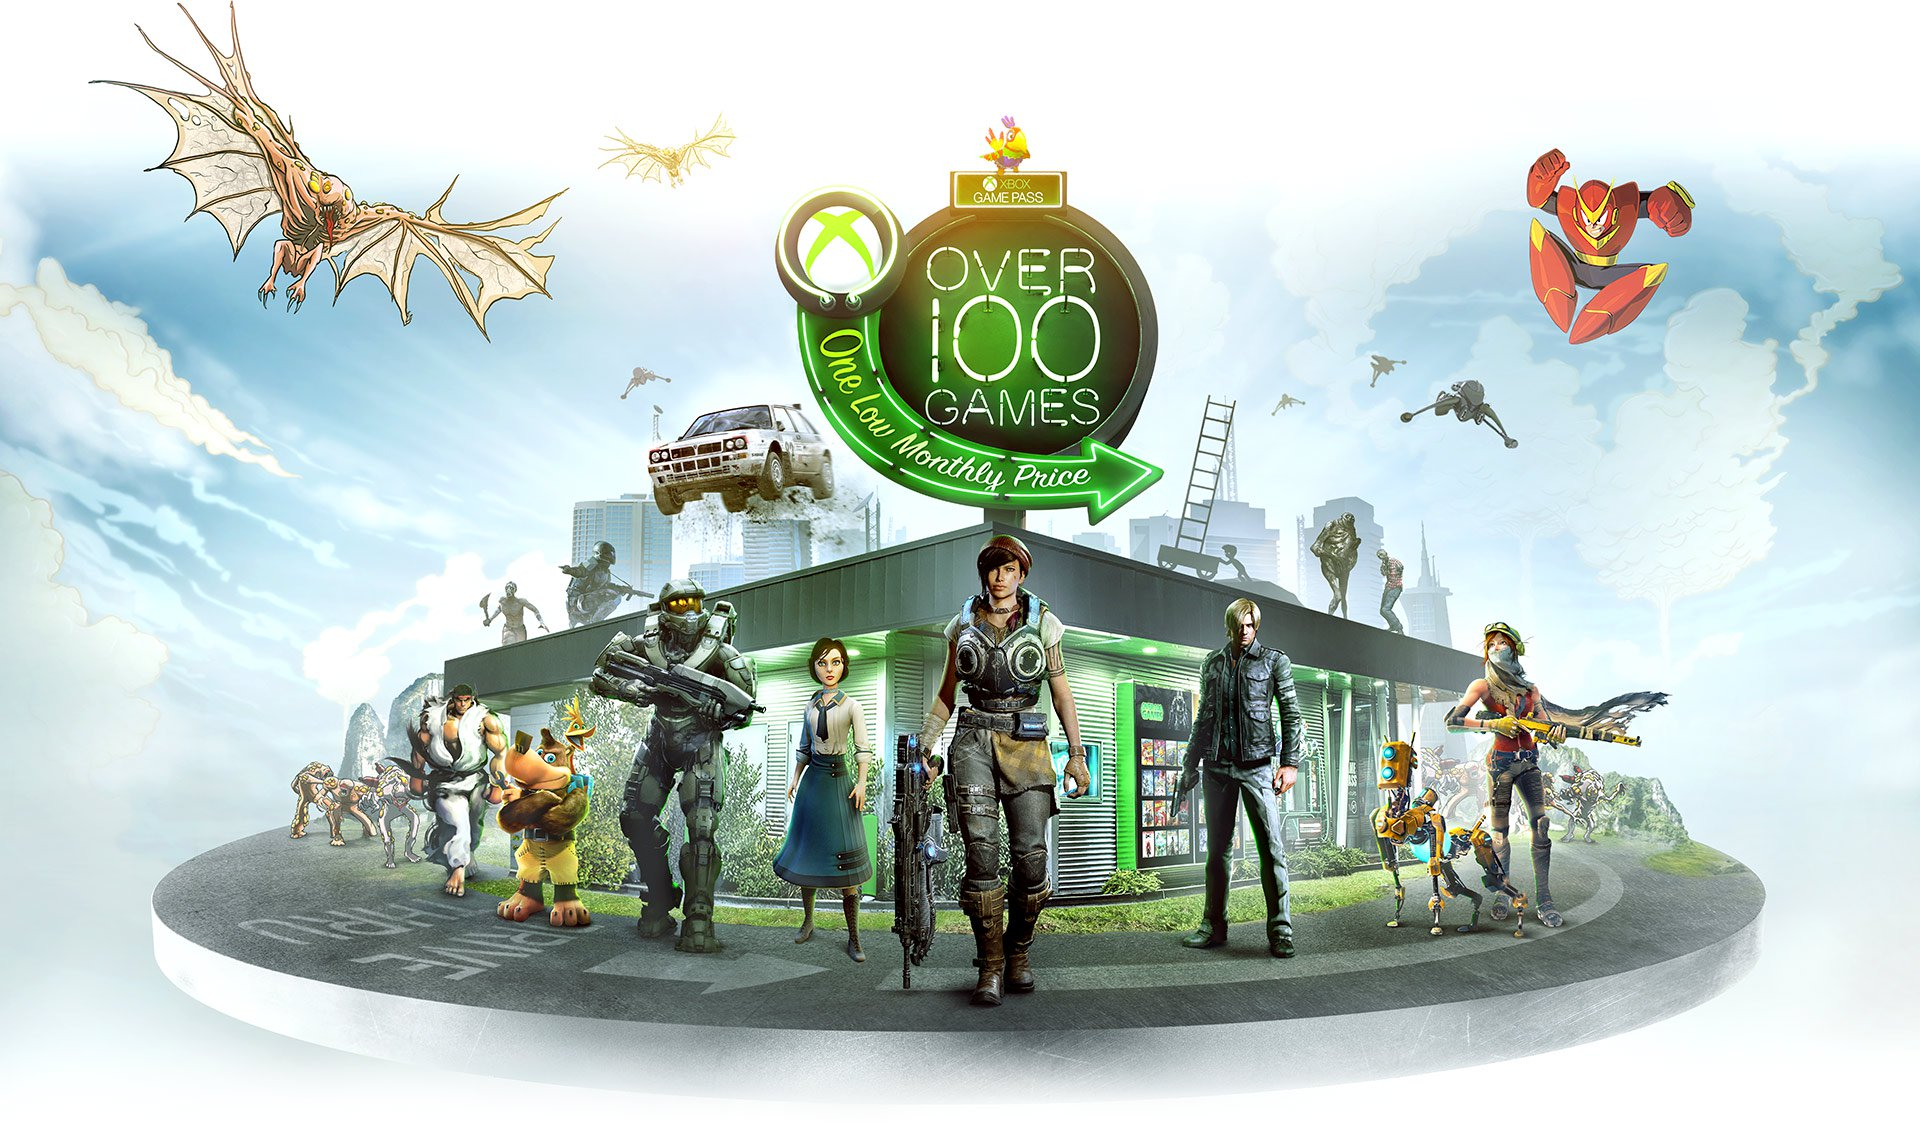 Fallout 4, The Elder Scrolls Online, and The Division Come to Xbox